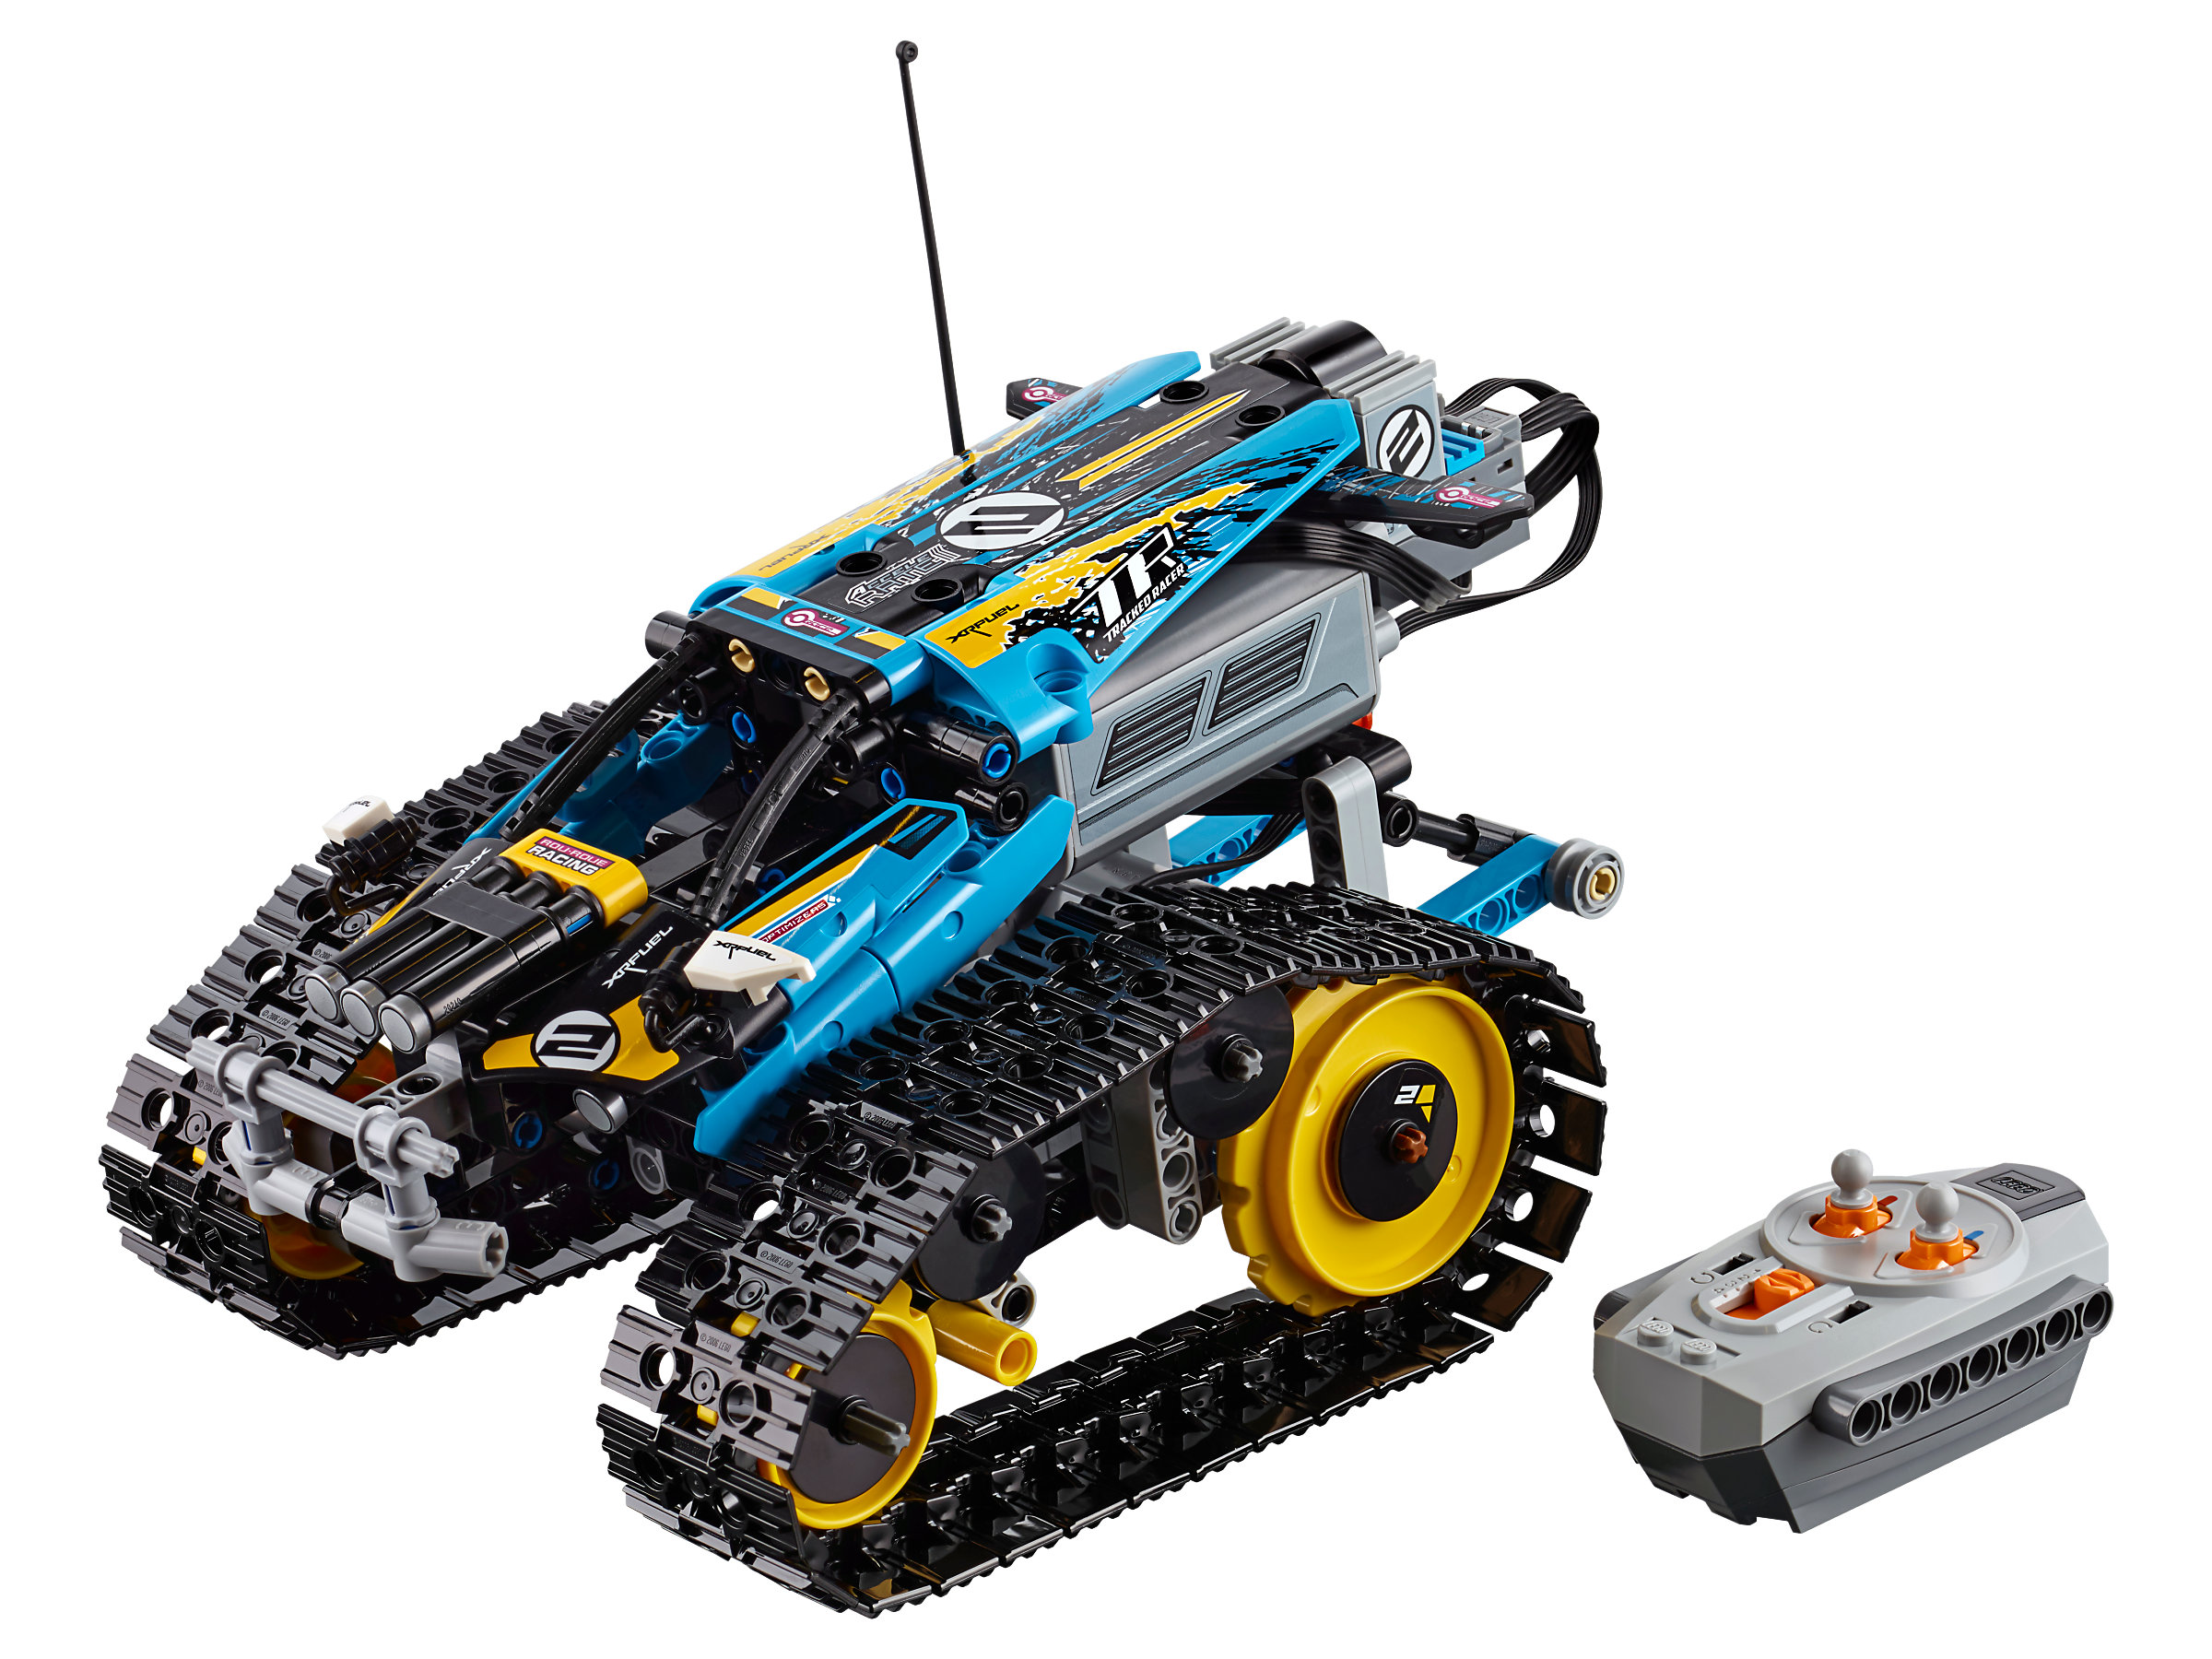 LEGO 8885 Technic Power Function IR Remote Control NEW 42065 41999 9398 42030